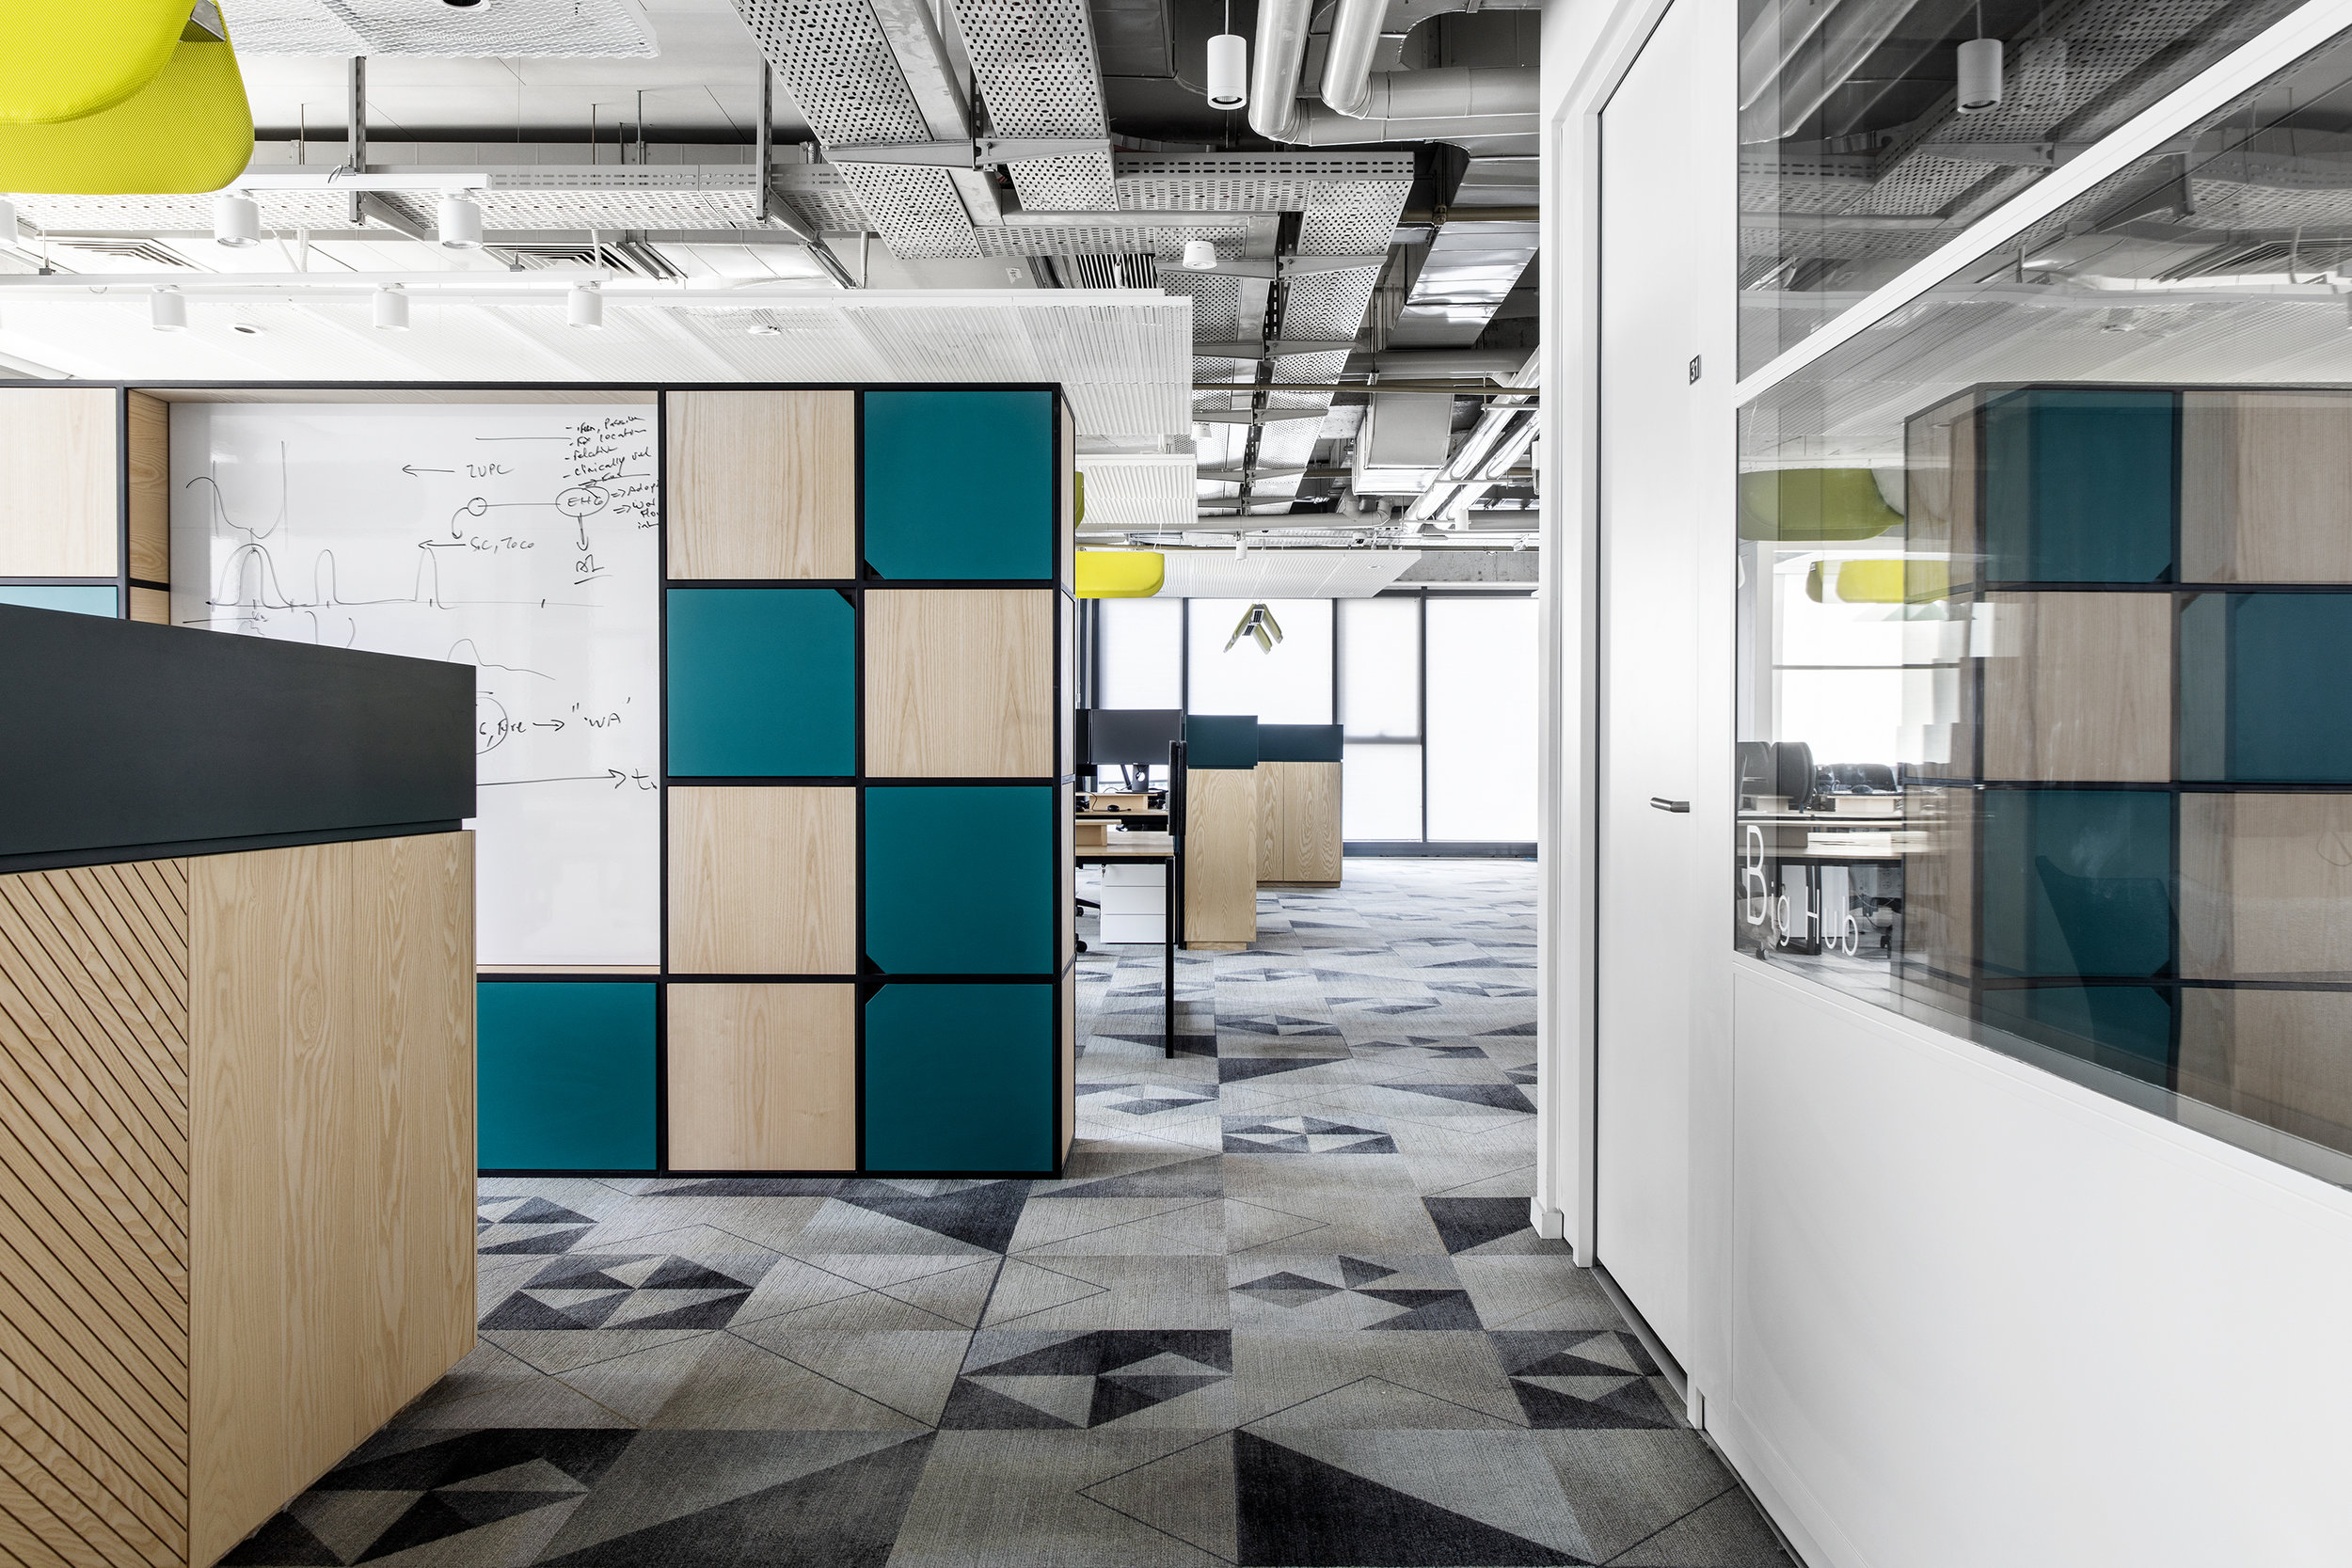 033_סטודיו רואי דוד - ROY DAVID ARCHITECTURE - NUVO OFFICES.jpg